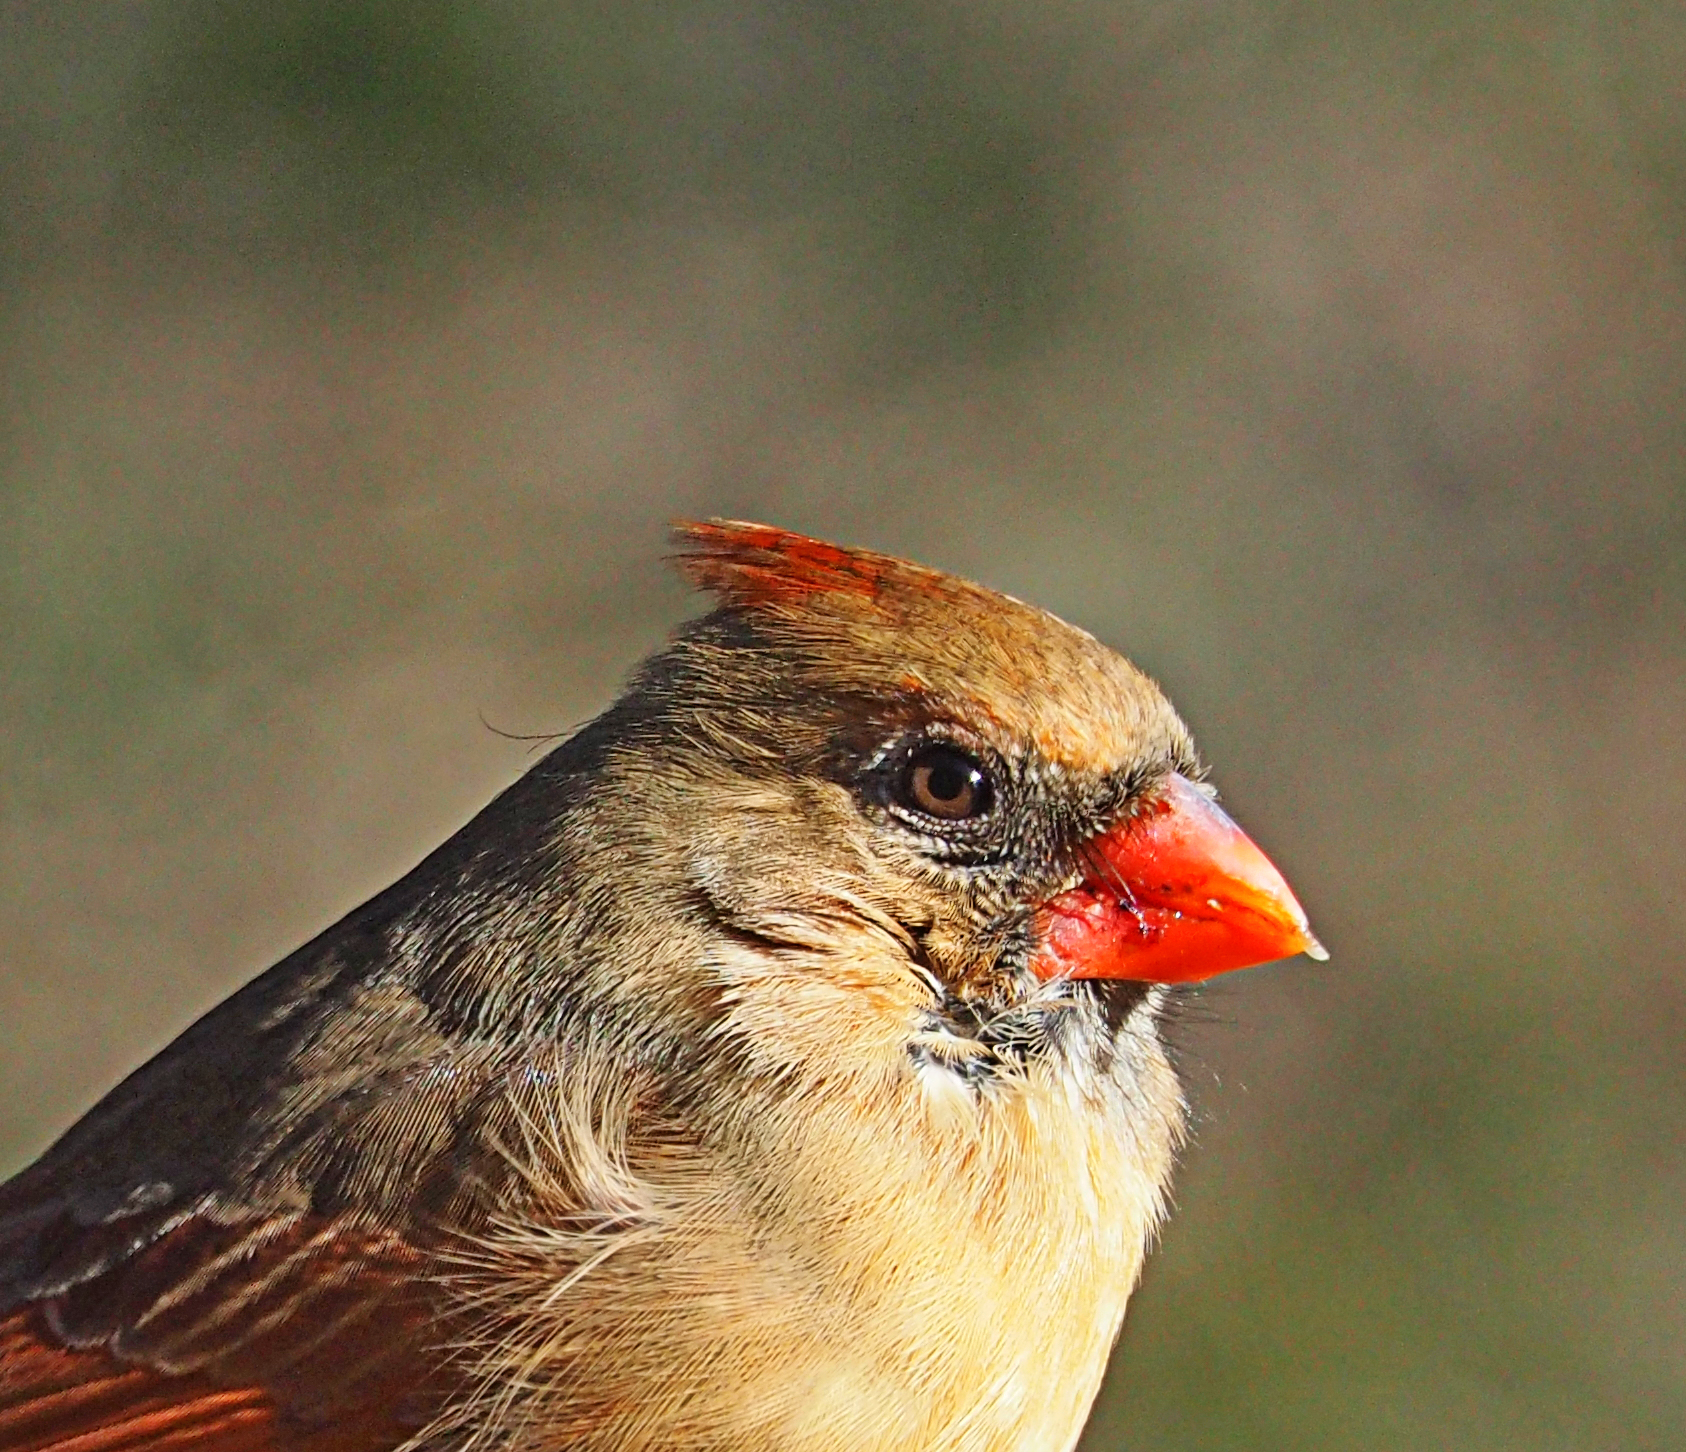 Female cardinal up close